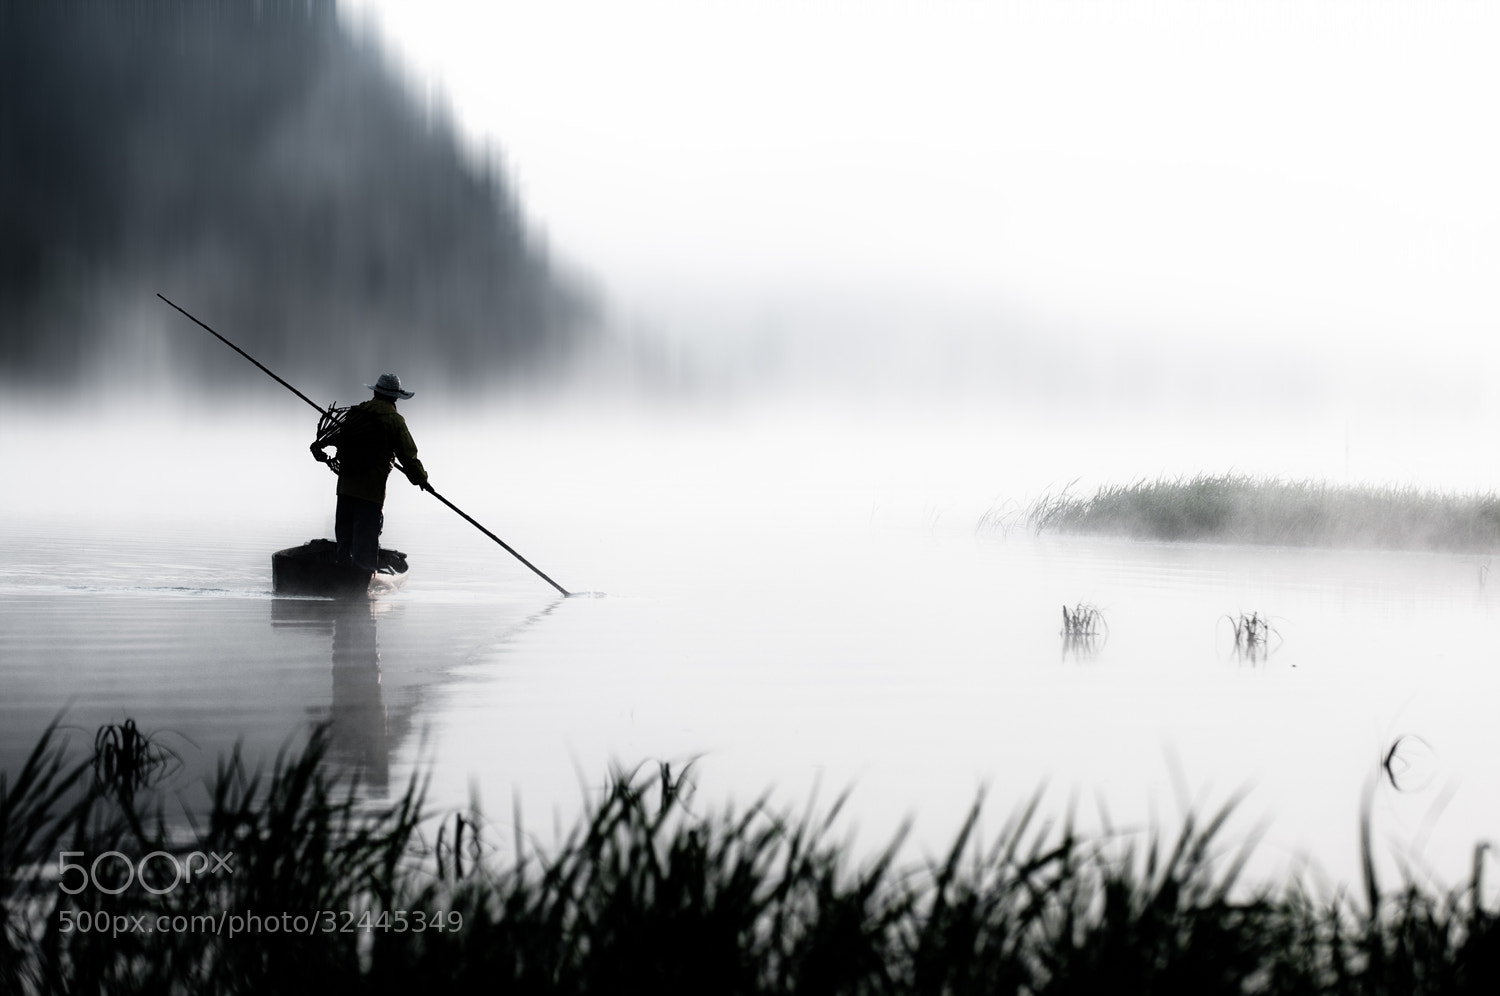 Photograph Misty by Dowon Choi on 500px